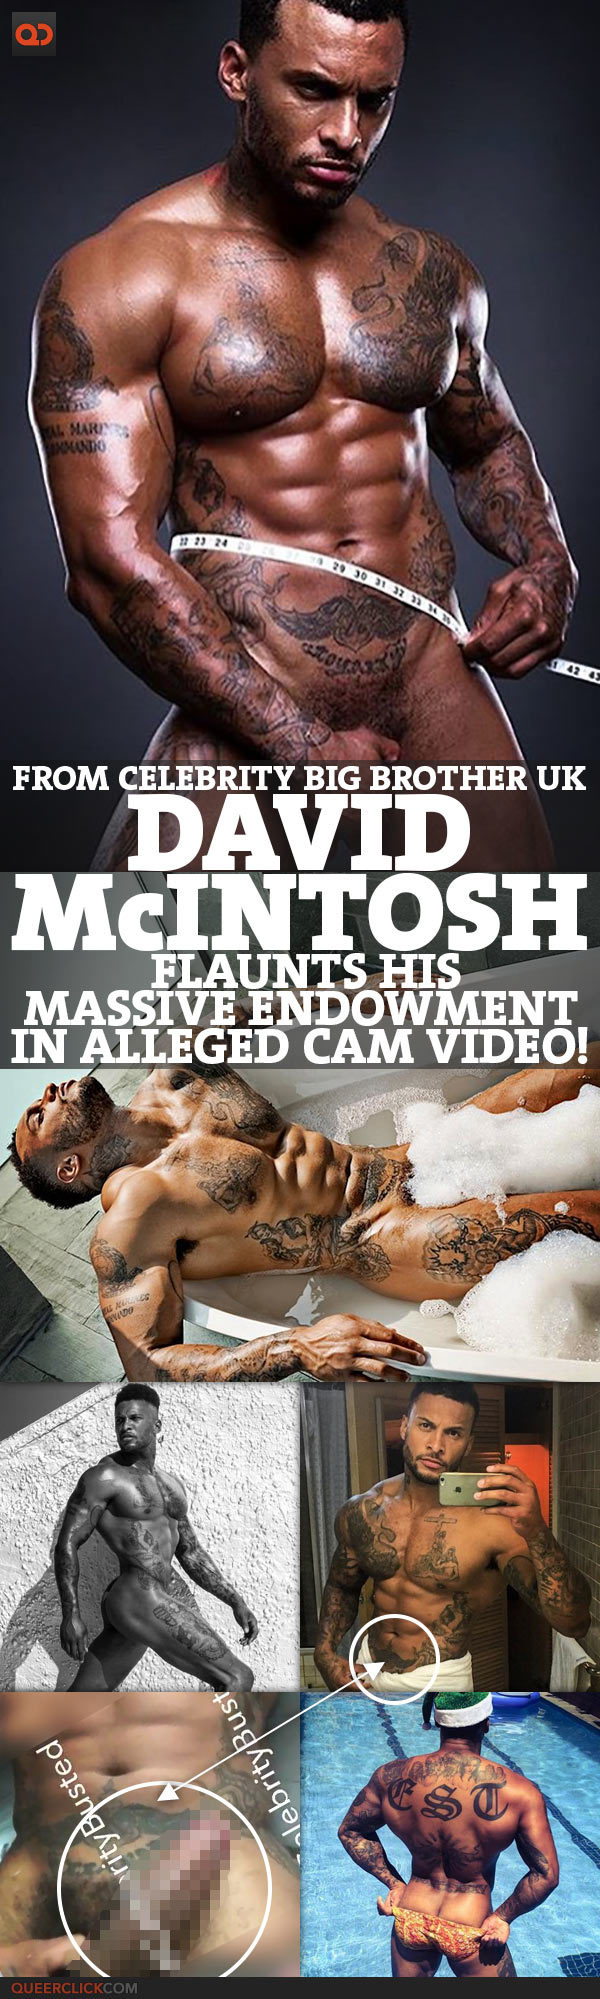 David Mcintosh, From Celebrity Big Brother UK, Flaunts His Massive Endowment In Alleged Cam Video!